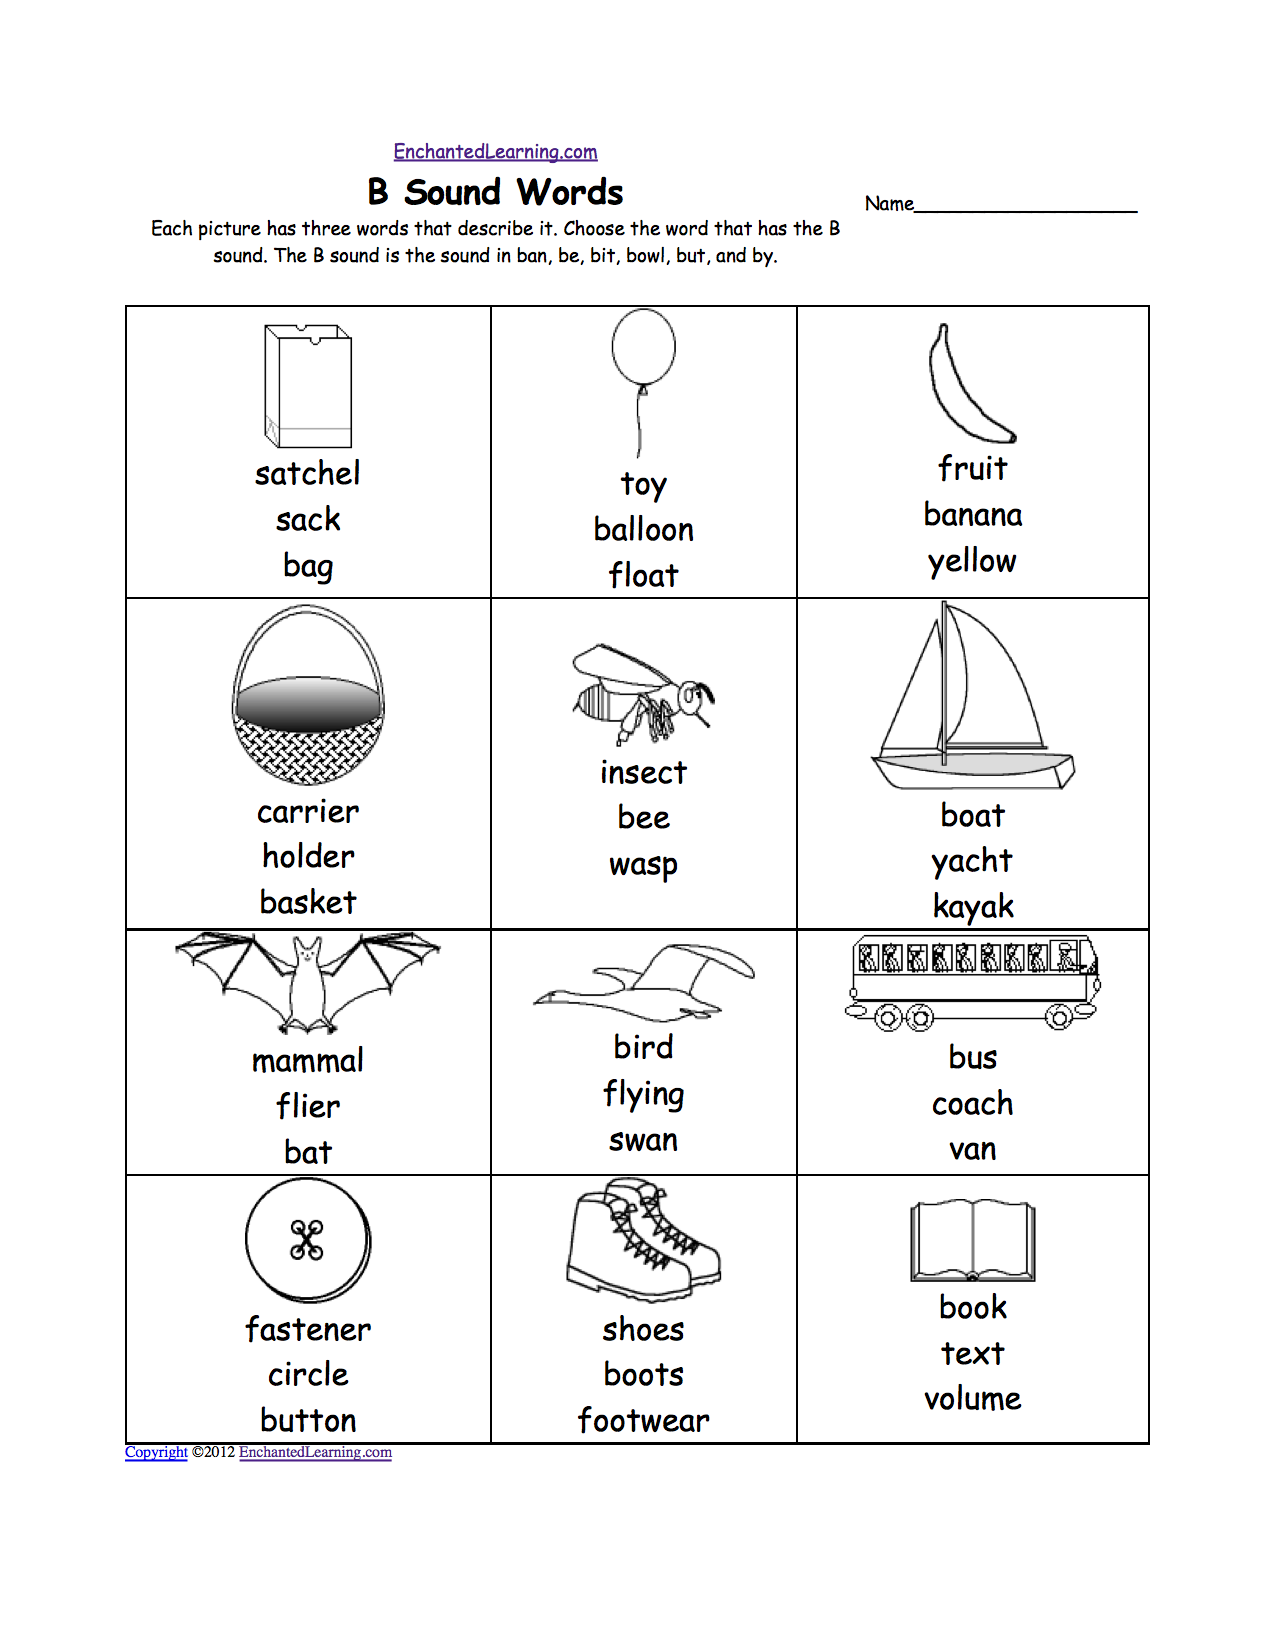 Proatmealus  Pleasing Phonics Worksheets Multiple Choice Worksheets To Print  With Licious Quotbquot Sound Phonics Worksheet Multiple Choice Each Picture Has Three Words That Describe It Choose The Word That Has A Quotbquot Sound The Quotbquot Sound Is The Sound  With Alluring Elementary Social Studies Worksheets Also Mixed Addition And Subtraction Worksheet In Addition Division Problem Worksheets And Compound Sentences Worksheet Th Grade As Well As Math Worksheets For  Graders Additionally Photosynthesis Worksheets Middle School From Enchantedlearningcom With Proatmealus  Licious Phonics Worksheets Multiple Choice Worksheets To Print  With Alluring Quotbquot Sound Phonics Worksheet Multiple Choice Each Picture Has Three Words That Describe It Choose The Word That Has A Quotbquot Sound The Quotbquot Sound Is The Sound  And Pleasing Elementary Social Studies Worksheets Also Mixed Addition And Subtraction Worksheet In Addition Division Problem Worksheets From Enchantedlearningcom